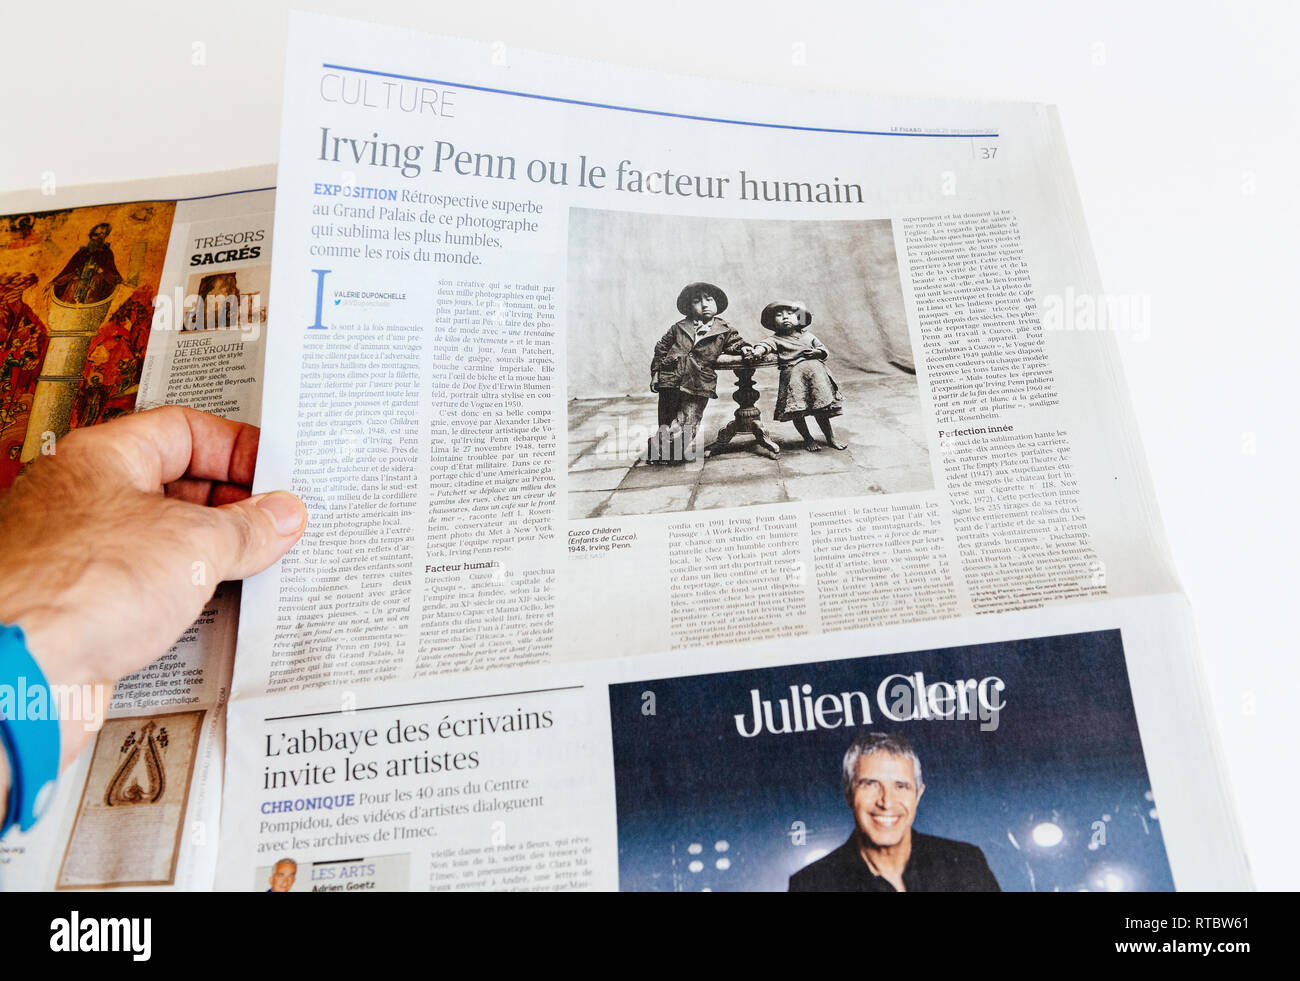 PARIS, FRANCE - SEP 25, 2017: Man reading international newspaper about Irving Penn exibition at Grand Palais in Paris, France  - Stock Image